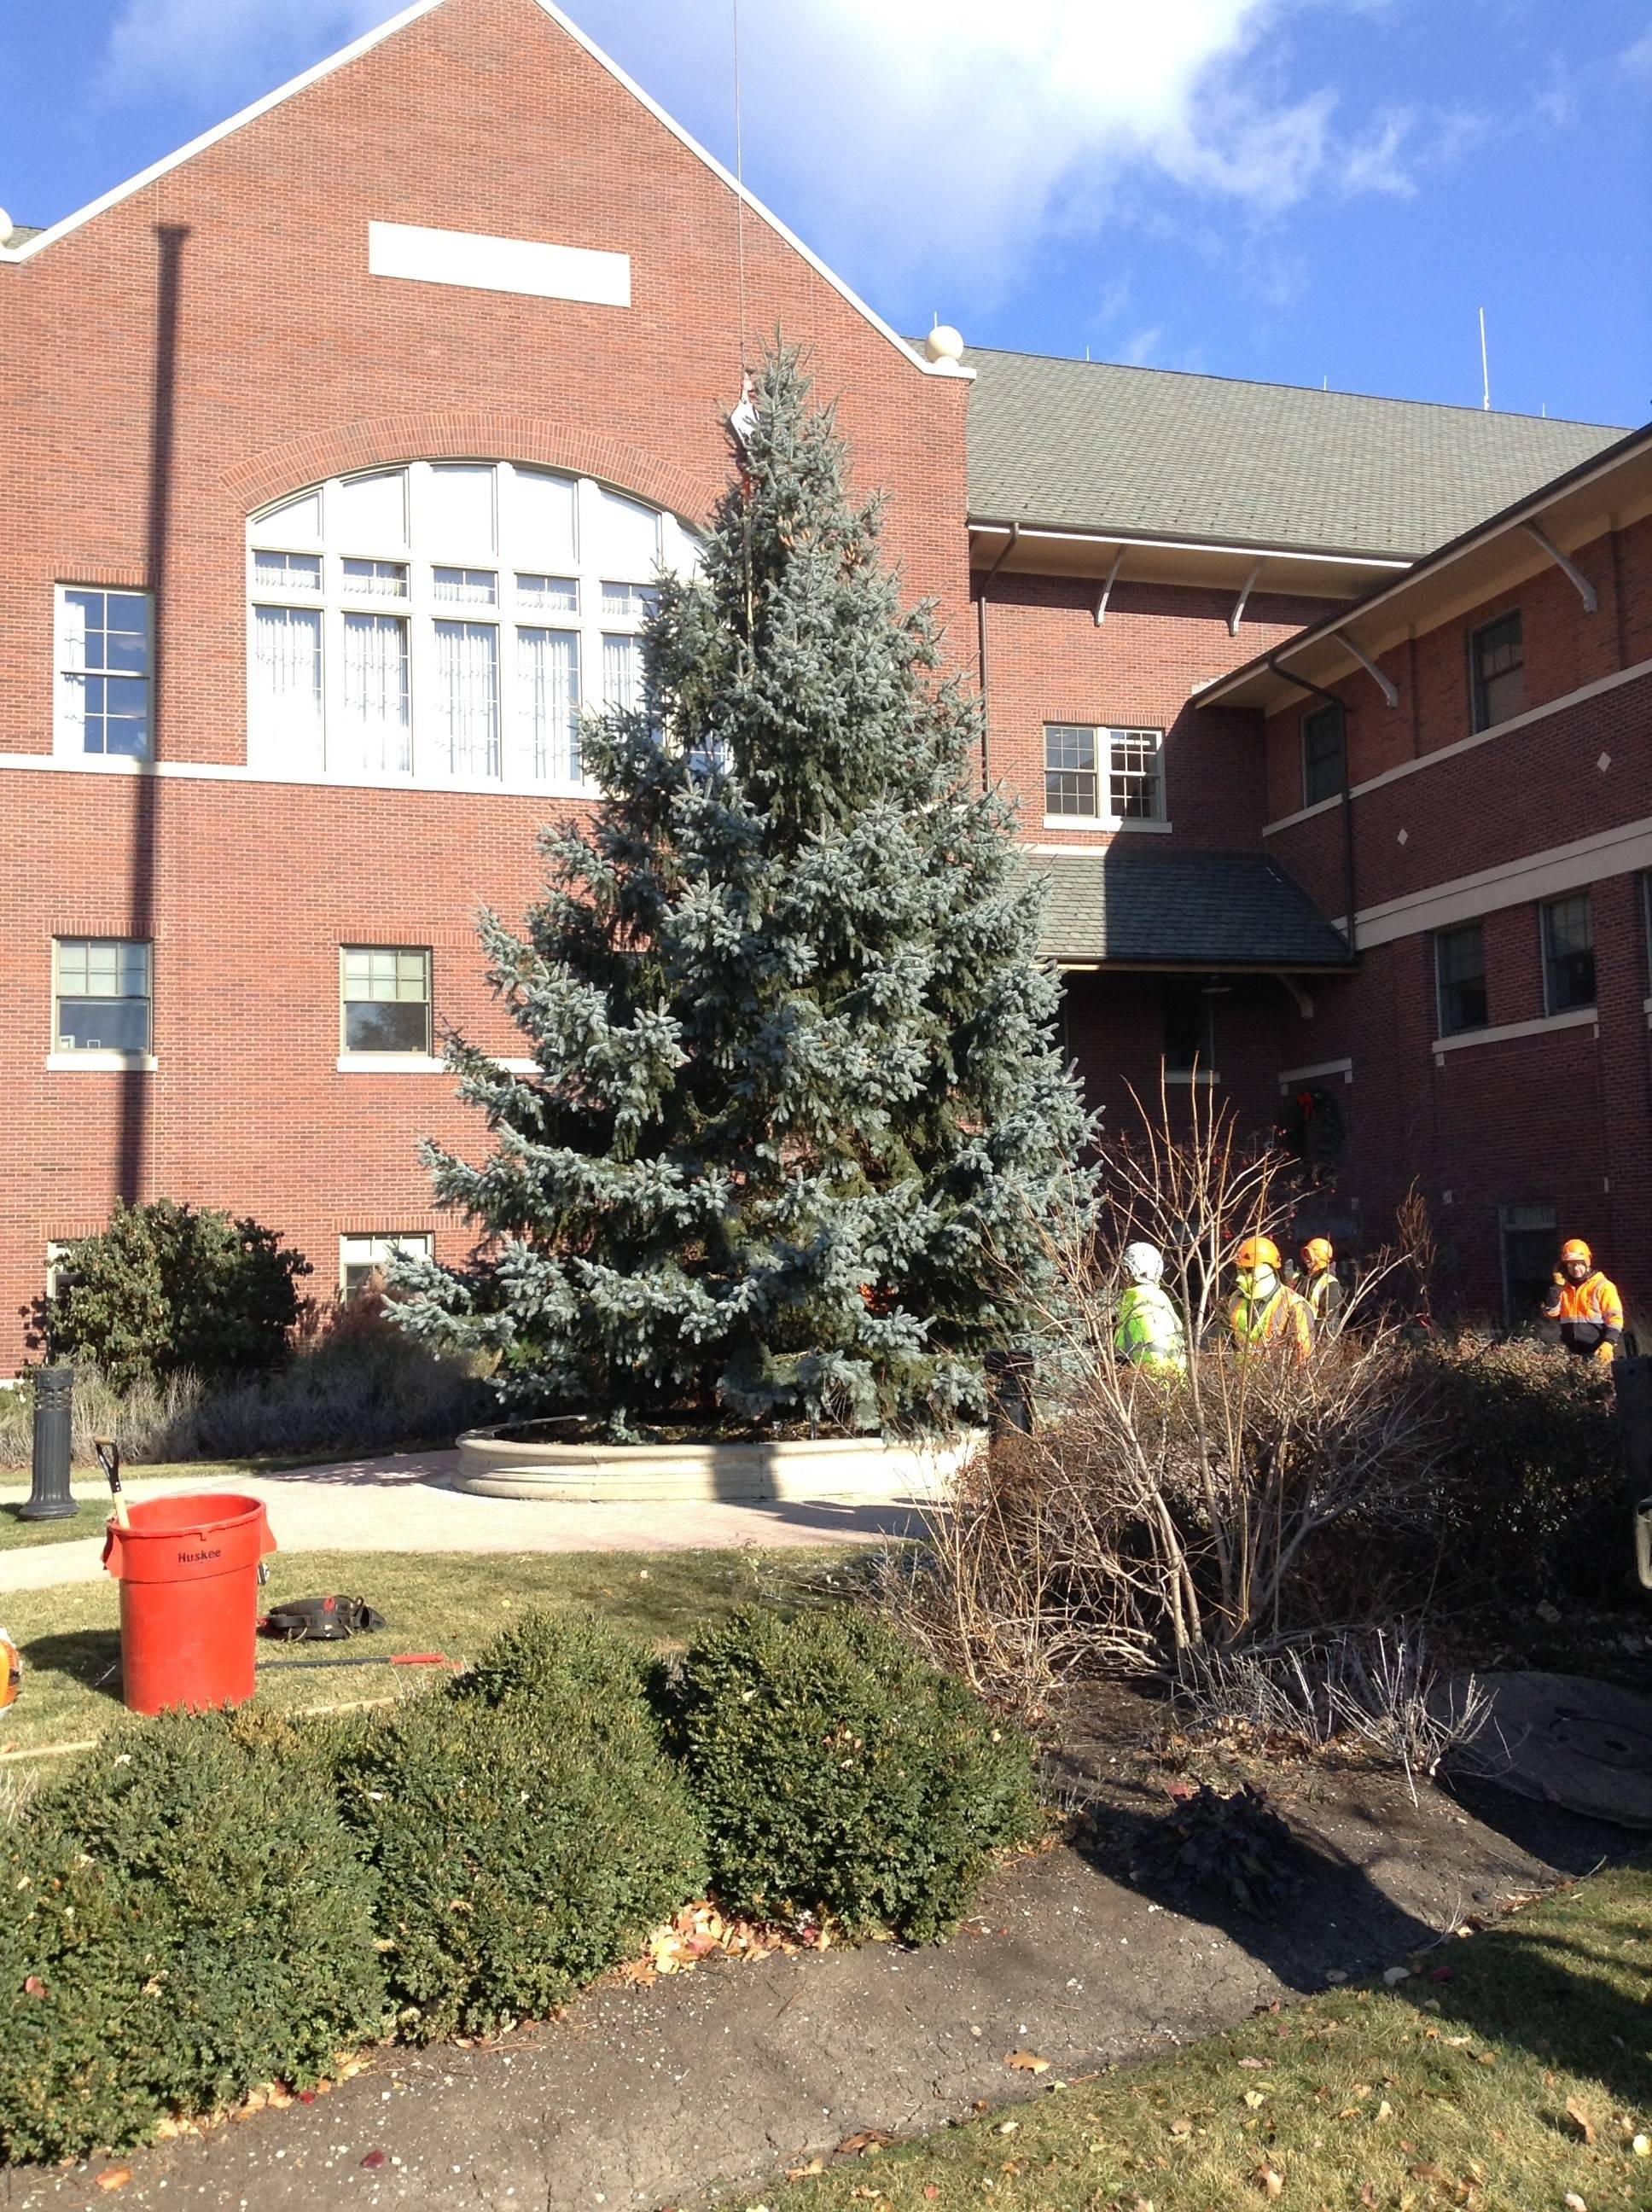 Work crews stabilize Mount Prospect's holiday tree in its spot outside village hall on Thursday. A formal tree-lighting ceremony will be held Nov. 26.